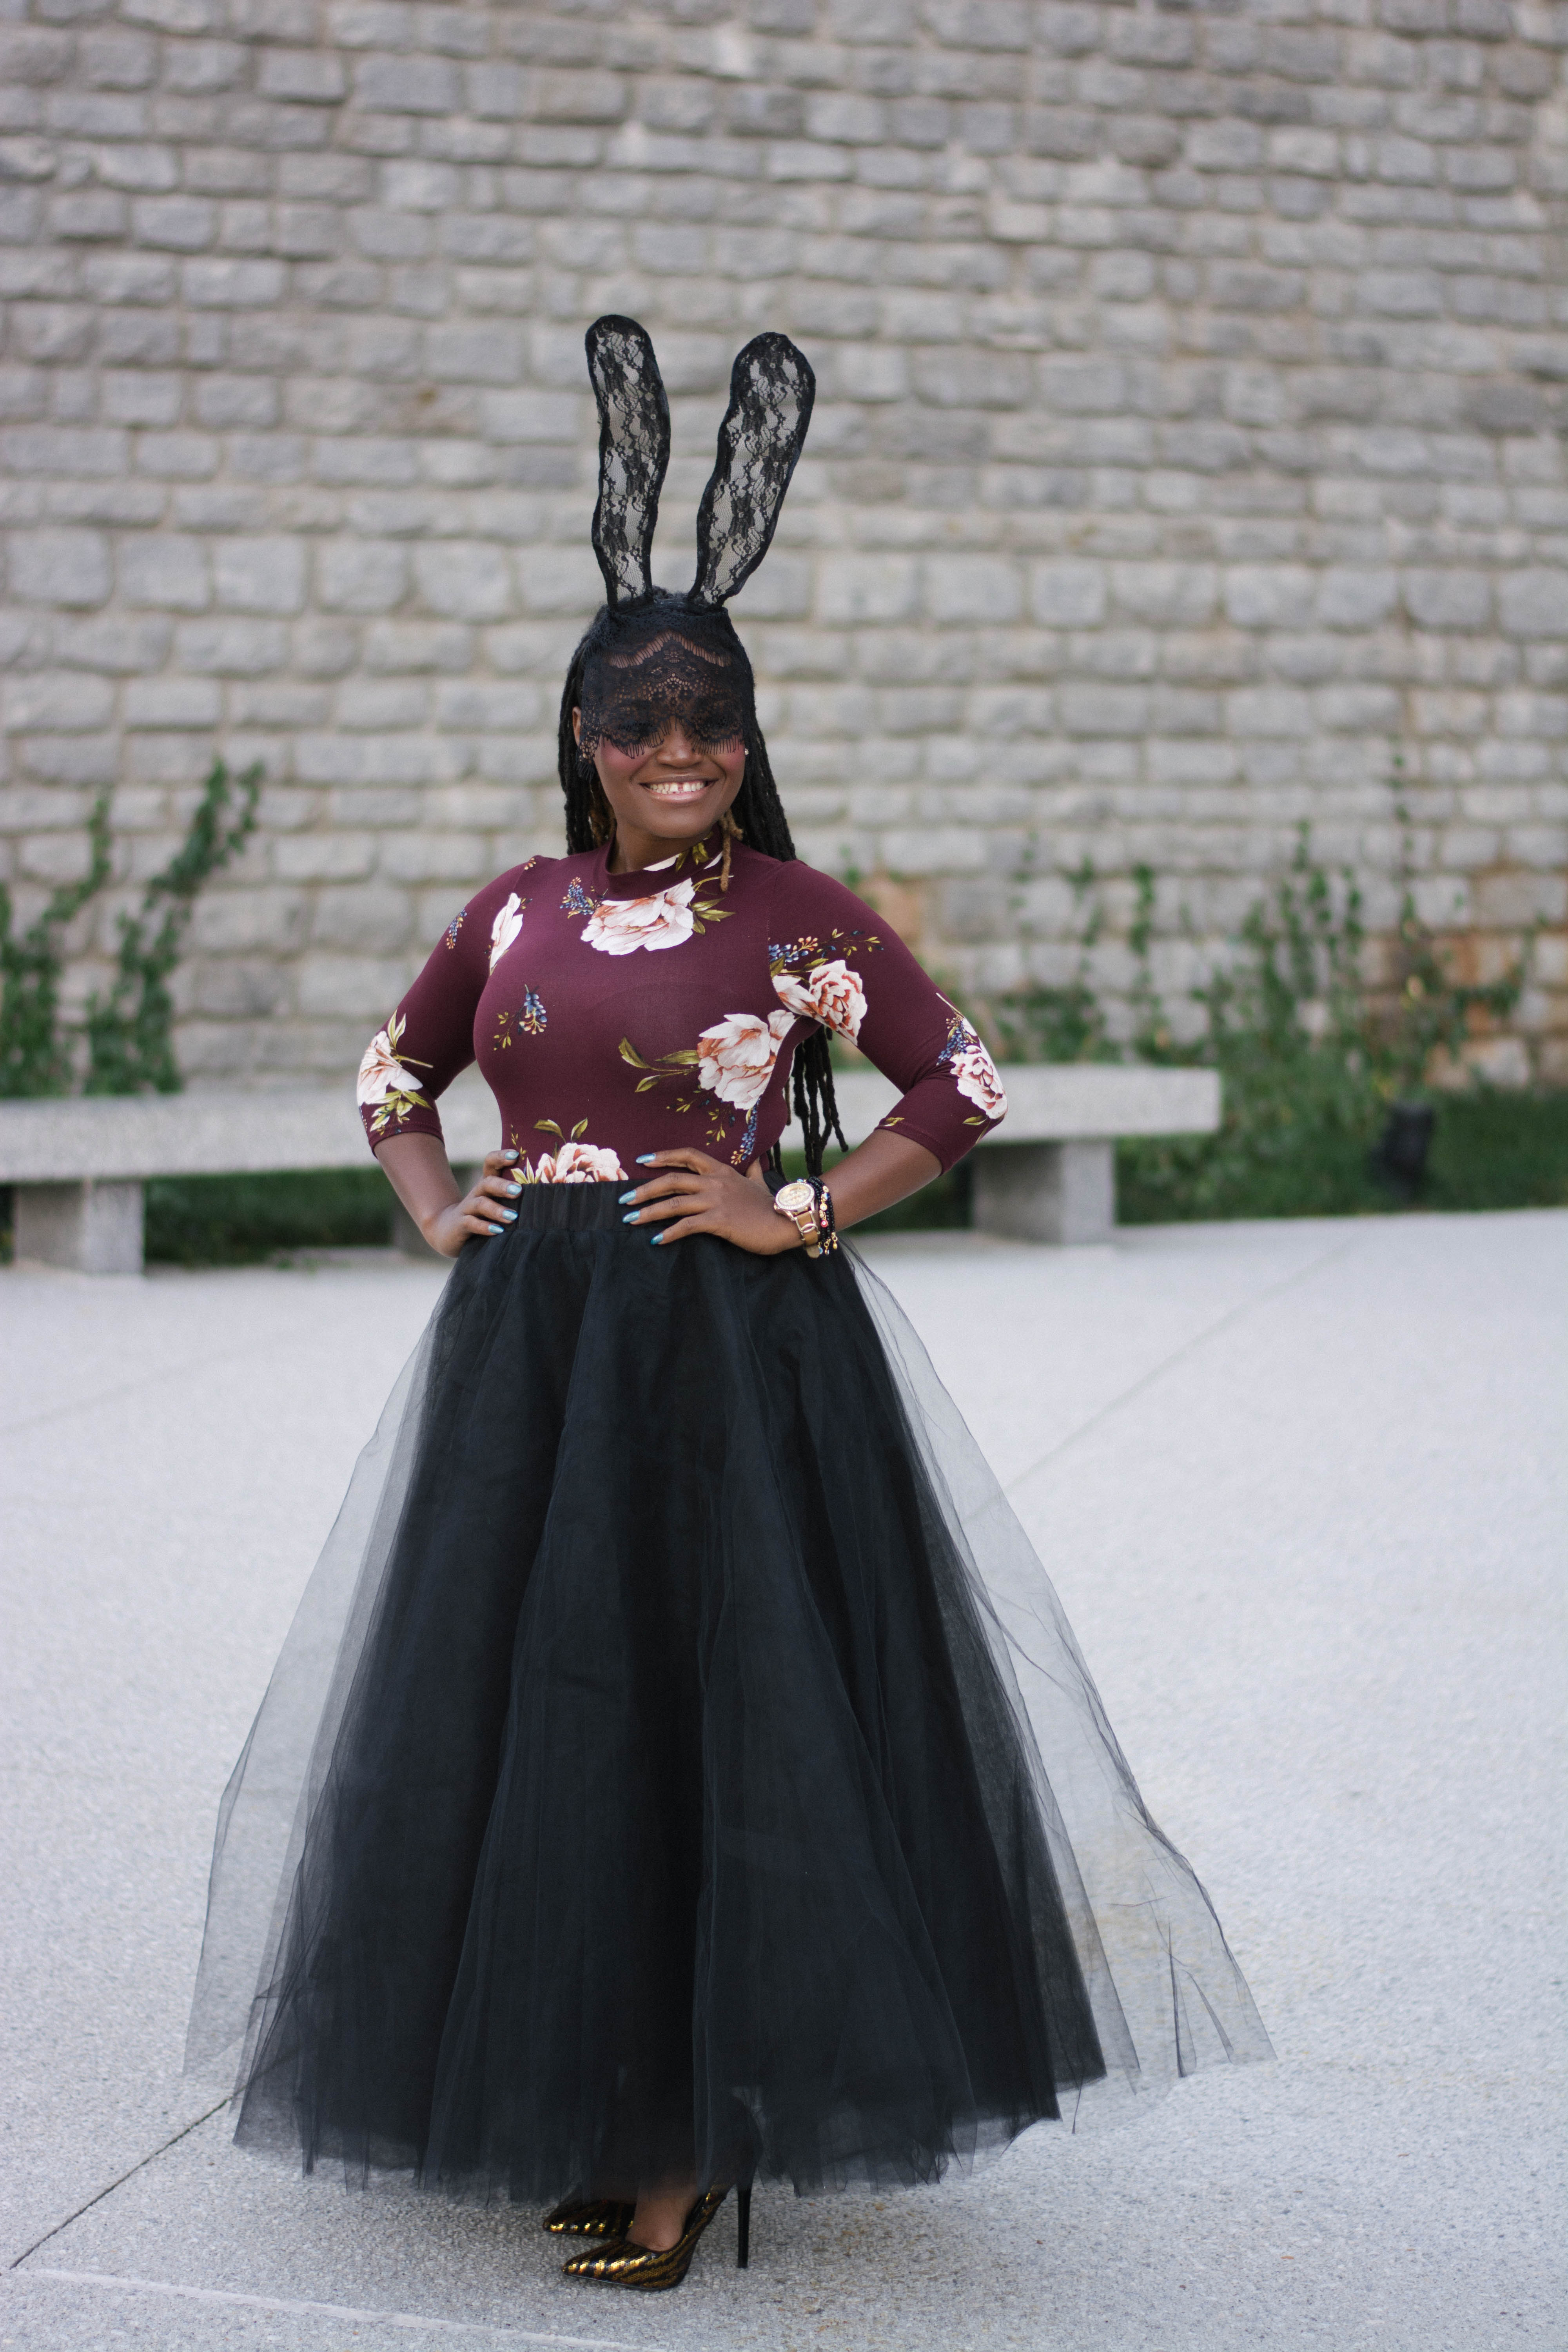 STYLE: HOLIDAY GLAMUP NOW LONG TUTU SKIRT